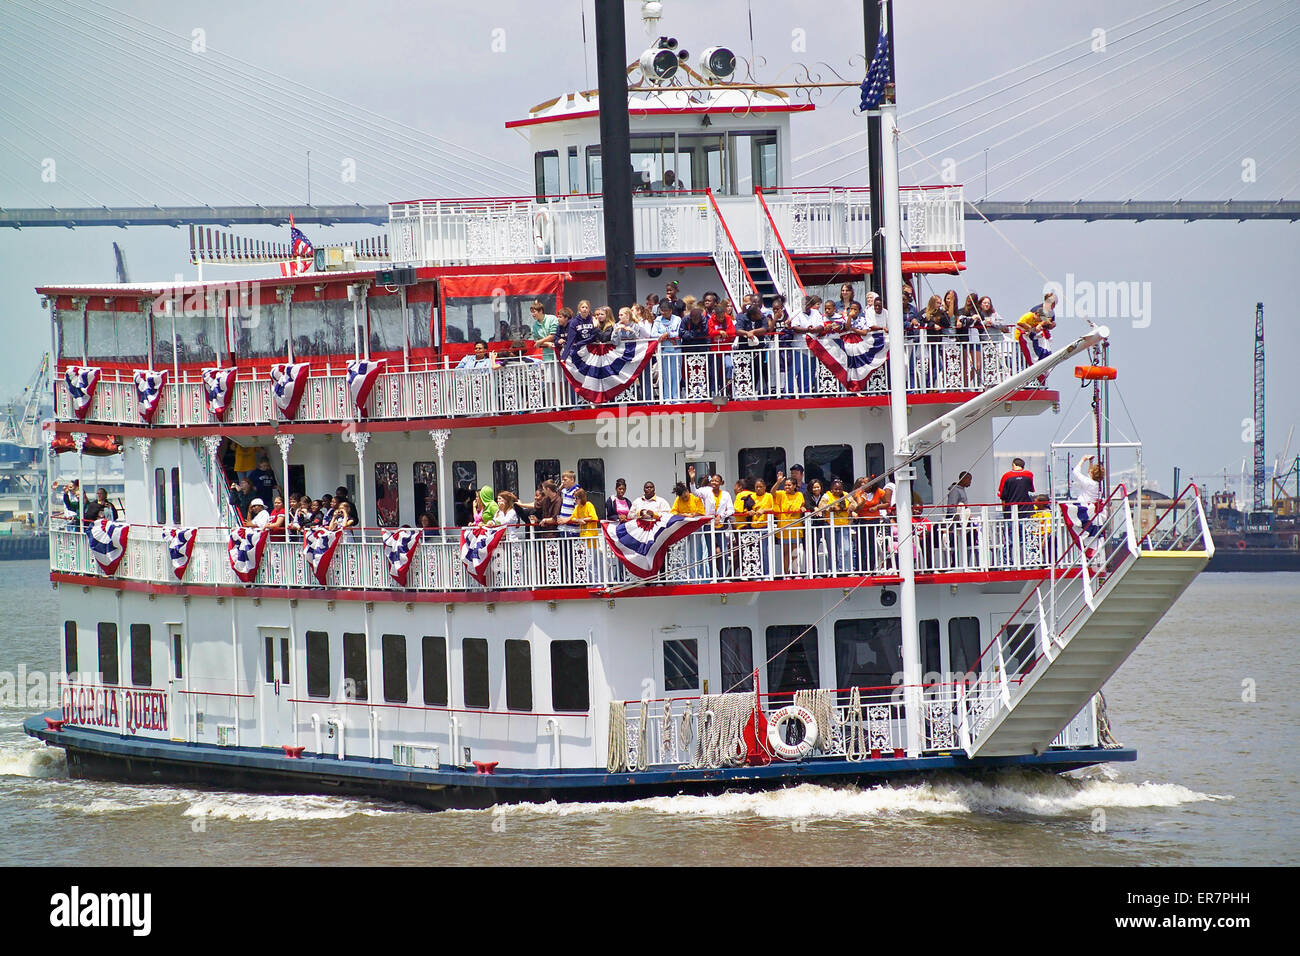 Schoolchildren get a local history lesson aboard an old-time riverboat that is exploring the Savannah River in Georgia, - Stock Image